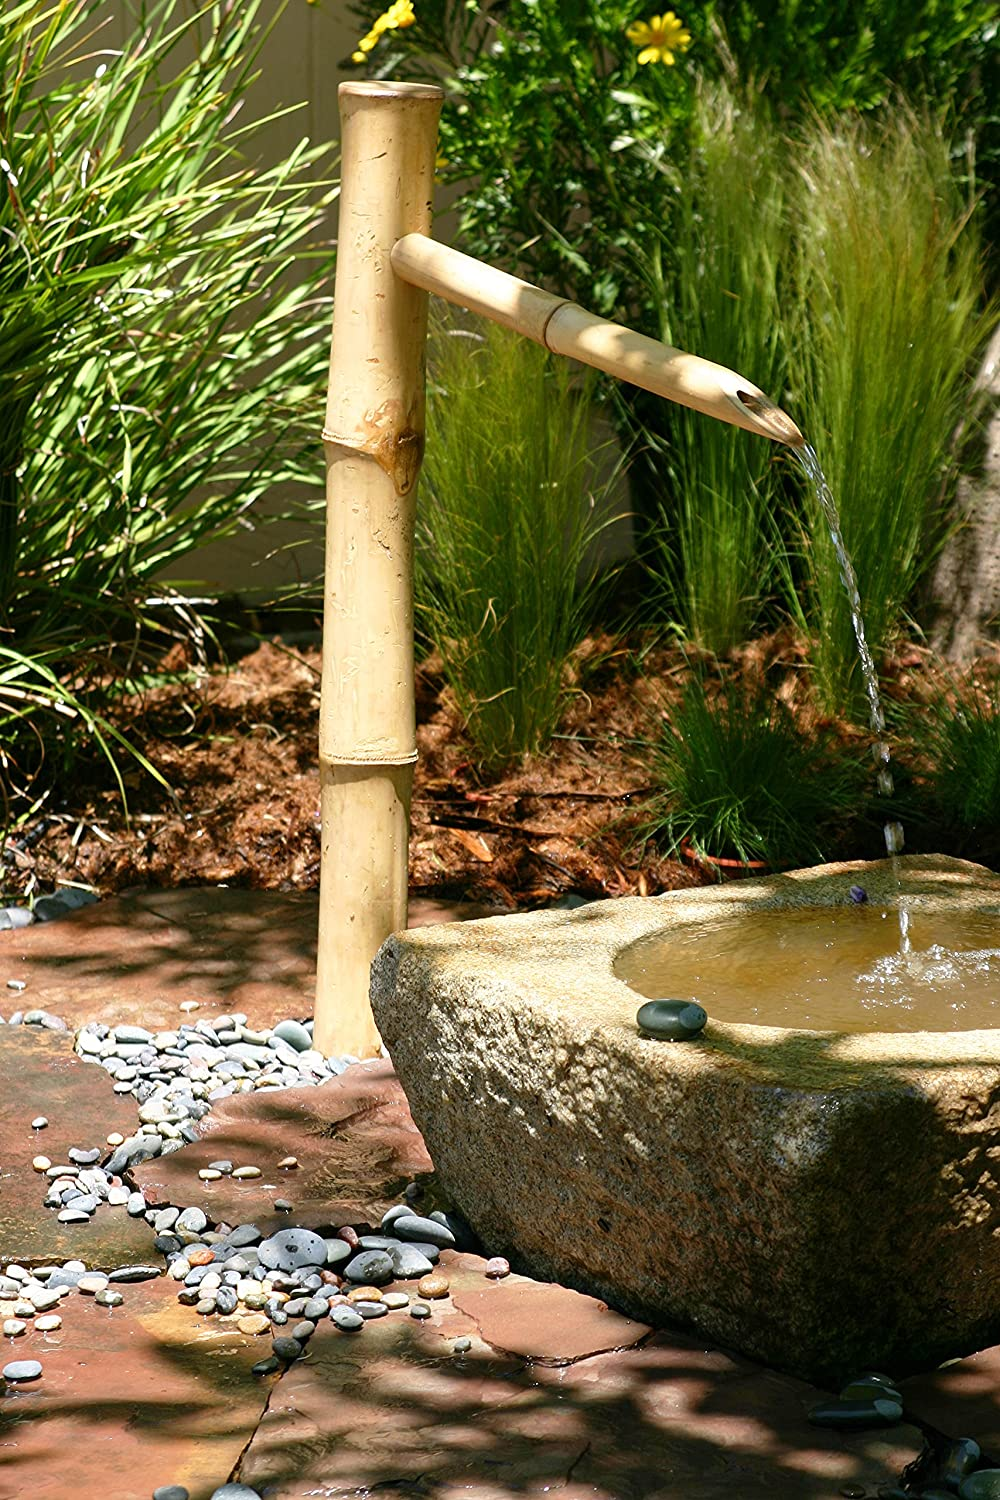 "Bamboo Accents 36"" Tall Outdoor Water Fountain Spout, Easy Install in Pond or Garden, Handmade Smooth Natural Split-Resistant Bamboo"